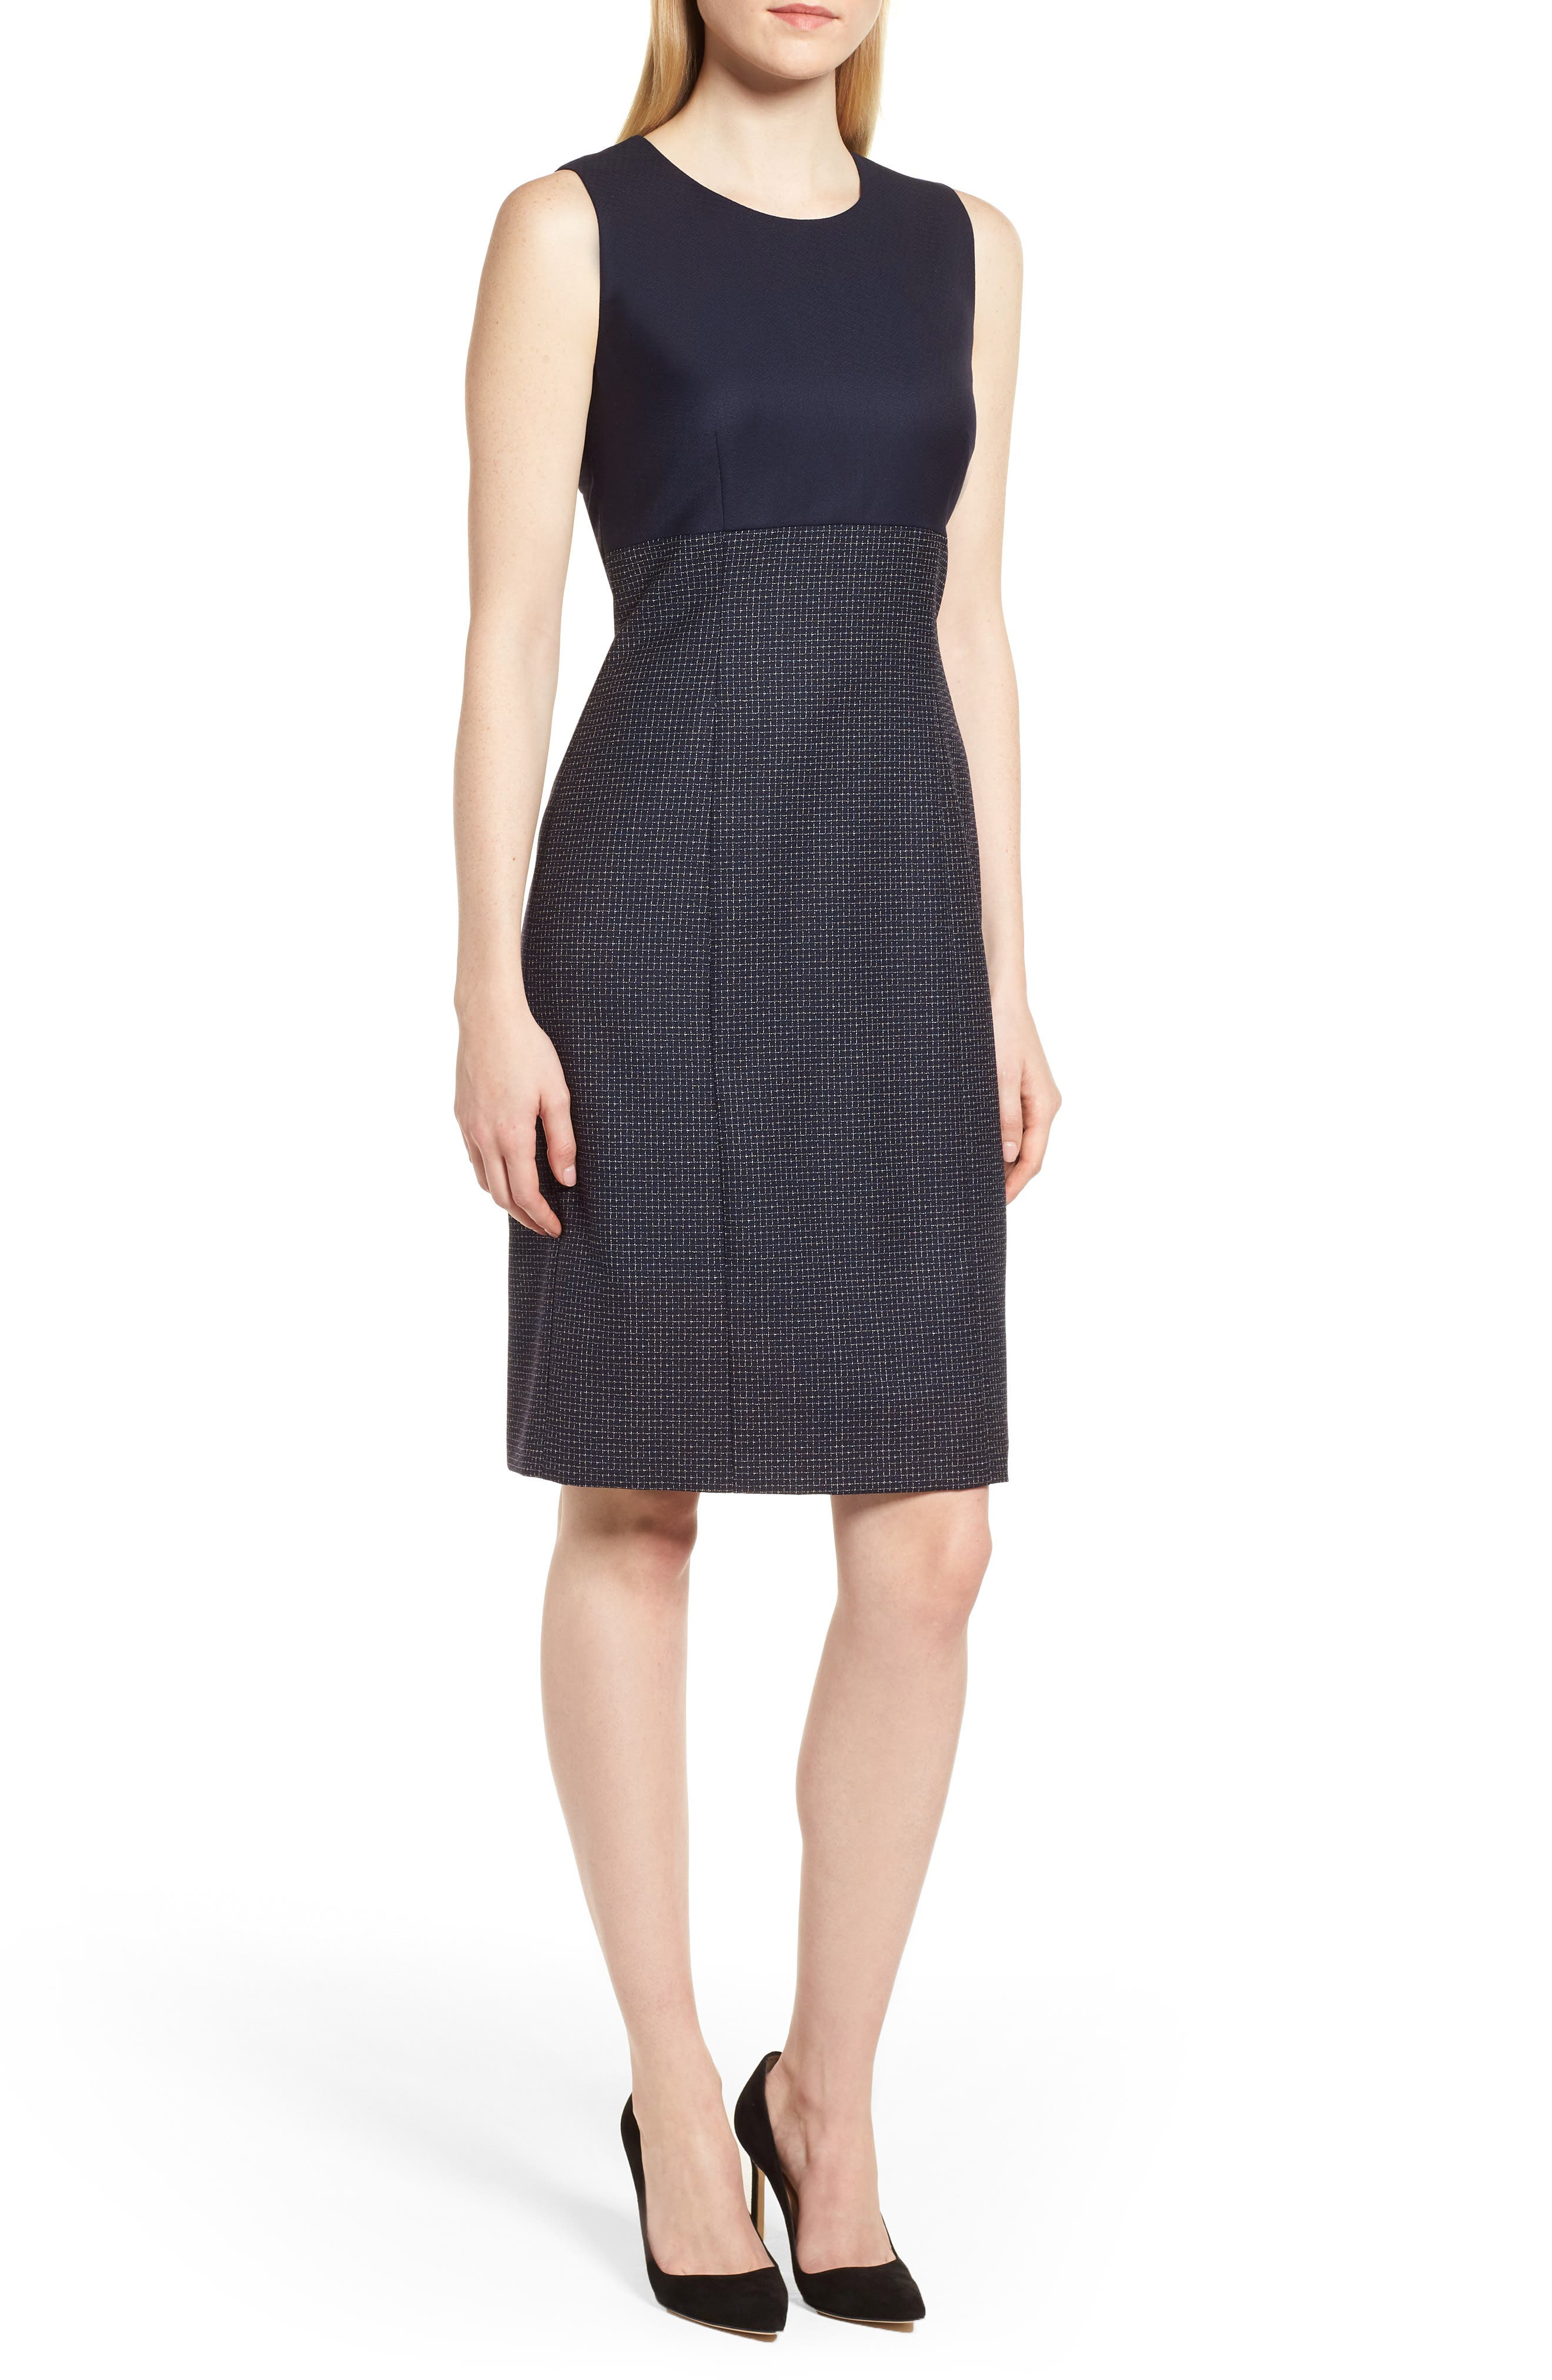 Dibena Windowpane Sheath Dress,                         Main,                         color,